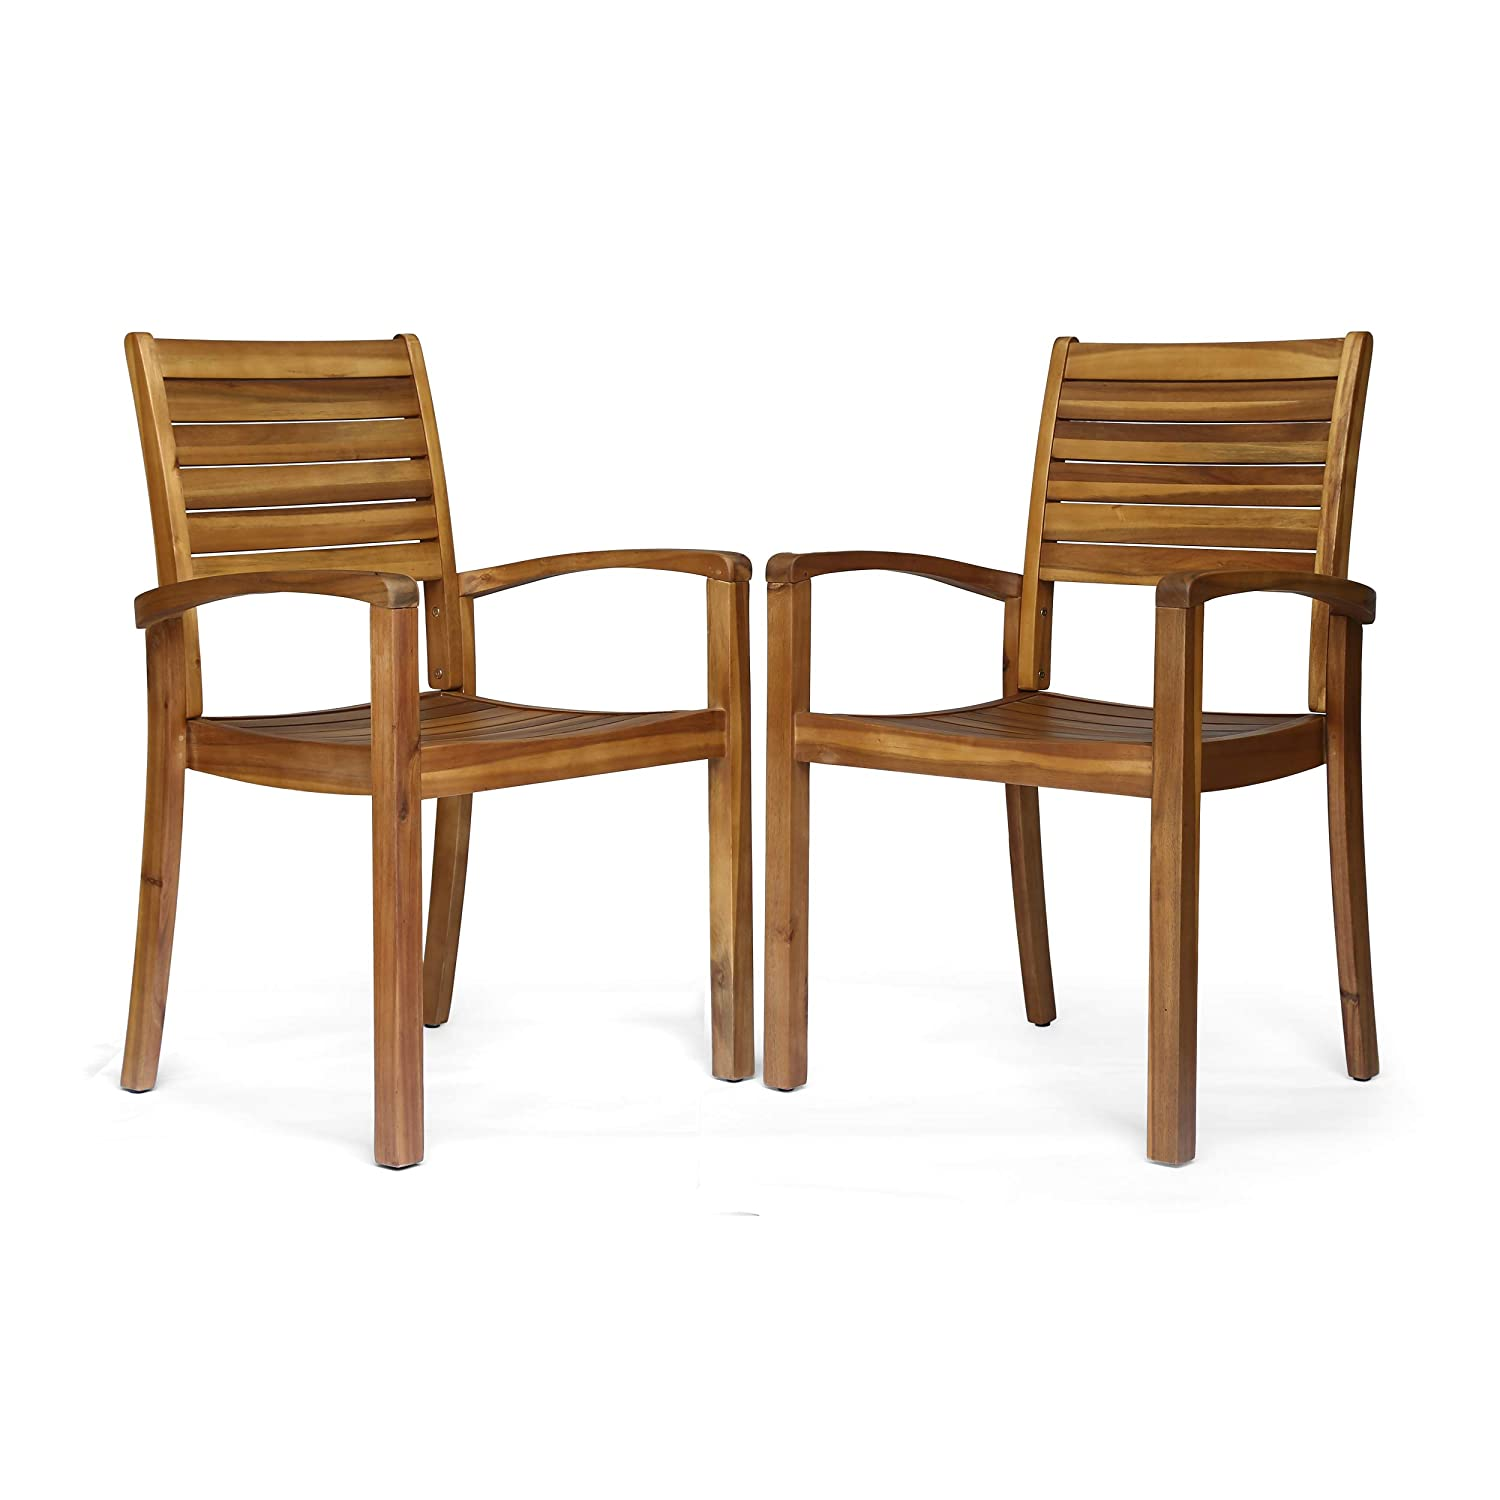 Christopher Knight Home 306431 Watts Outdoor Acacia Wood Dining Chairs, Teak Finish (Set of 2)